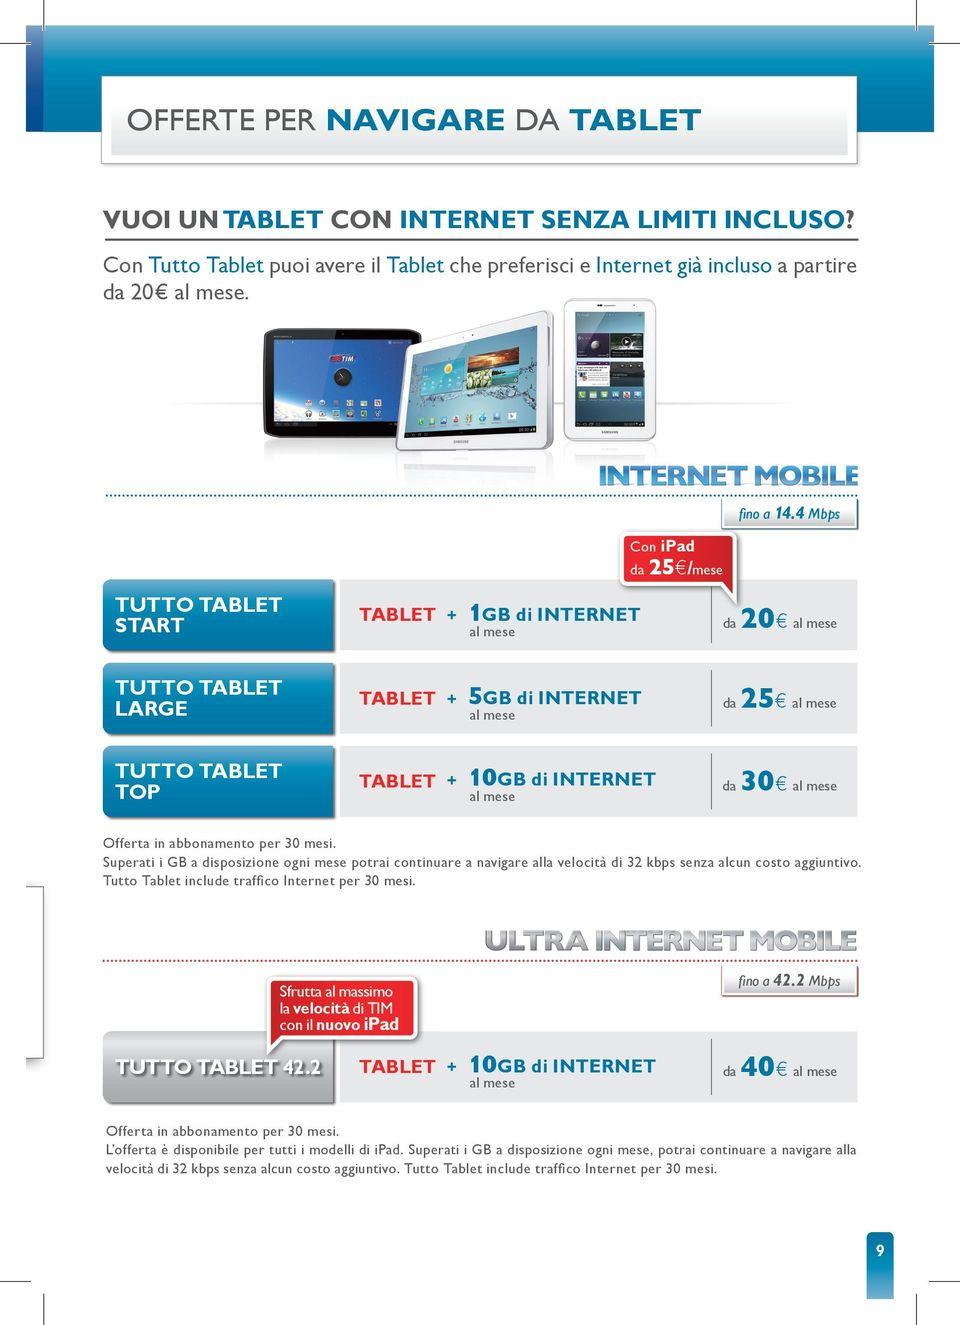 4 Mbps tutto Tablet start Tablet + 1Gb di Internet da 20 tutto Tablet large Tablet + 5Gb di Internet da 25 tutto Tablet top Tablet + 10Gb di Internet da 30 Offerta in abbonamento per 30 mesi.